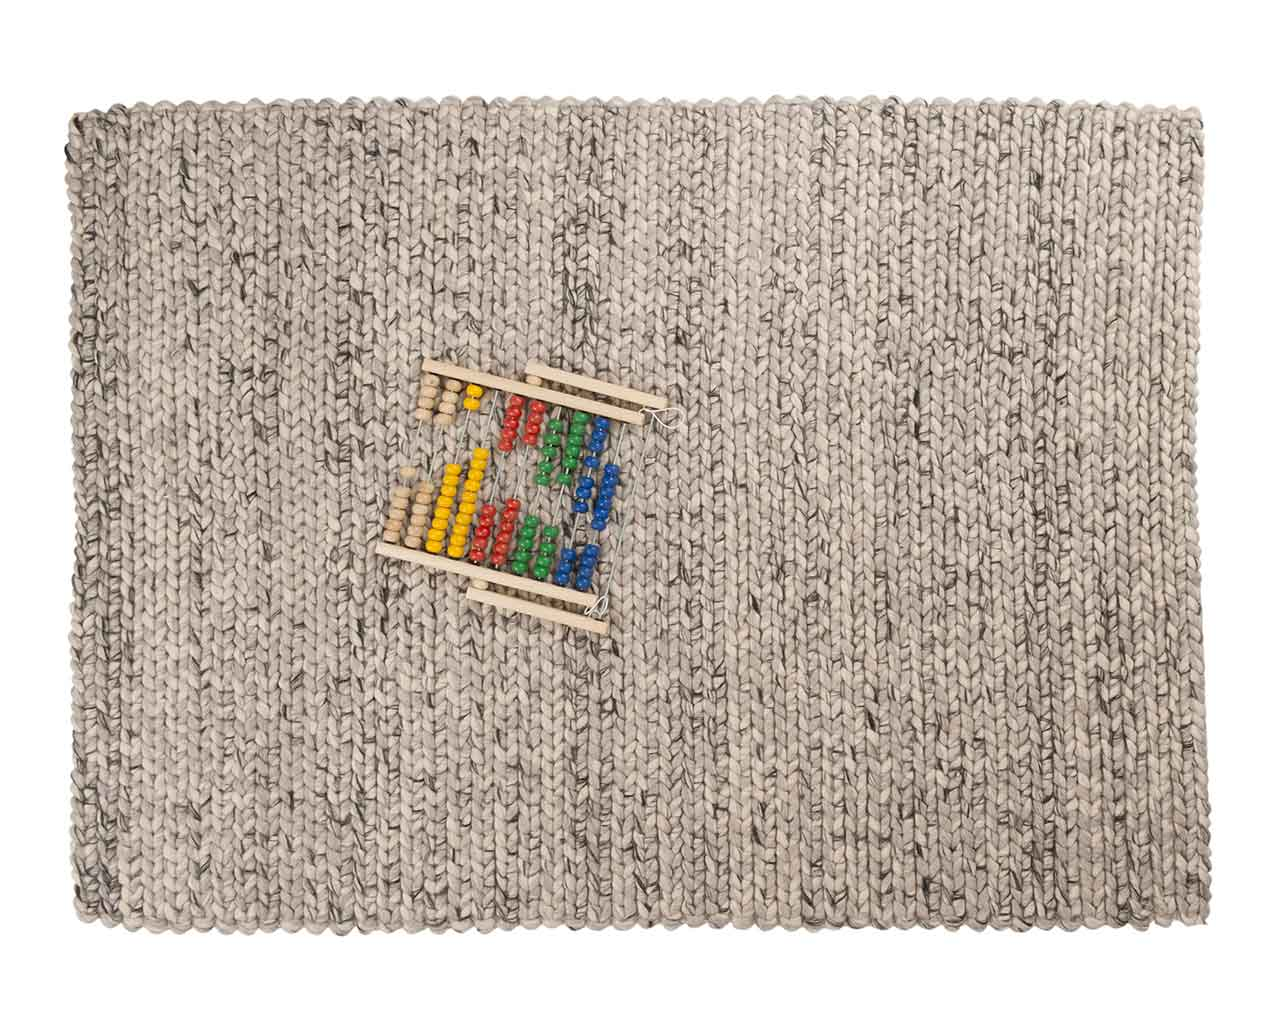 woolen rugs prices high quality architects 1